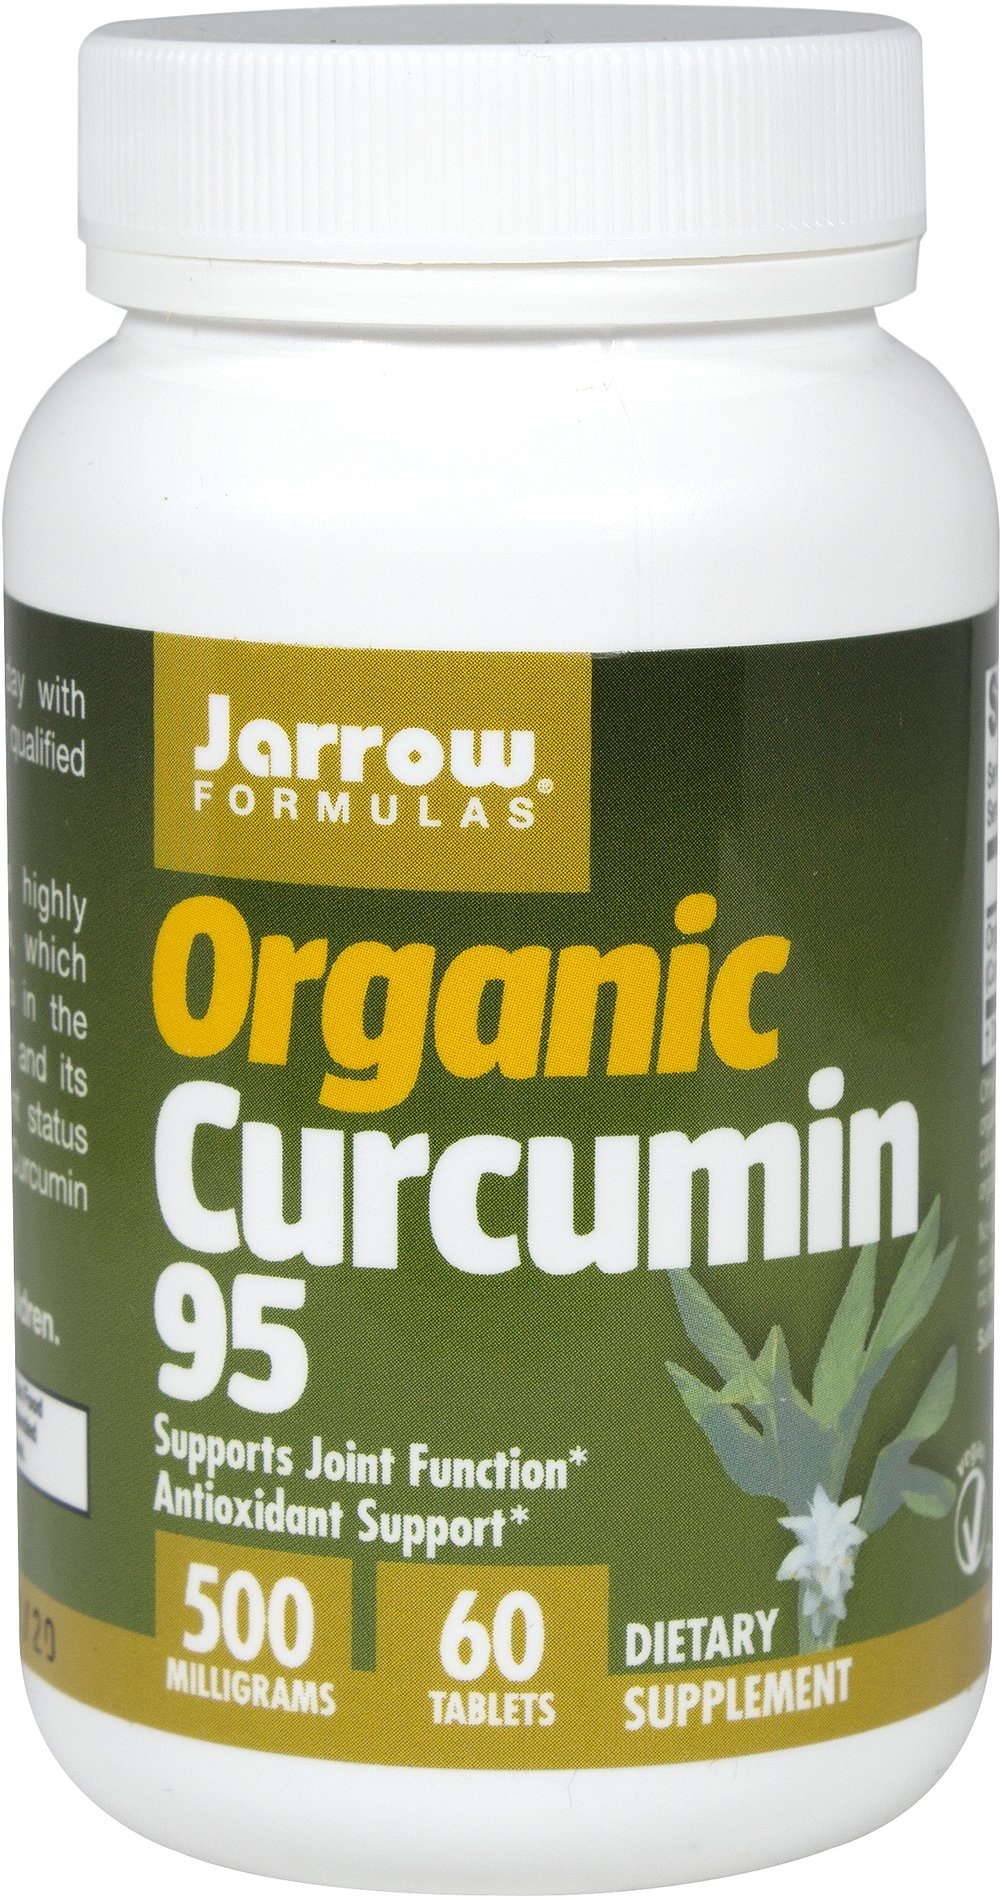 Organic Curcumin 95 500 mg Thumbnail Alternate Bottle View